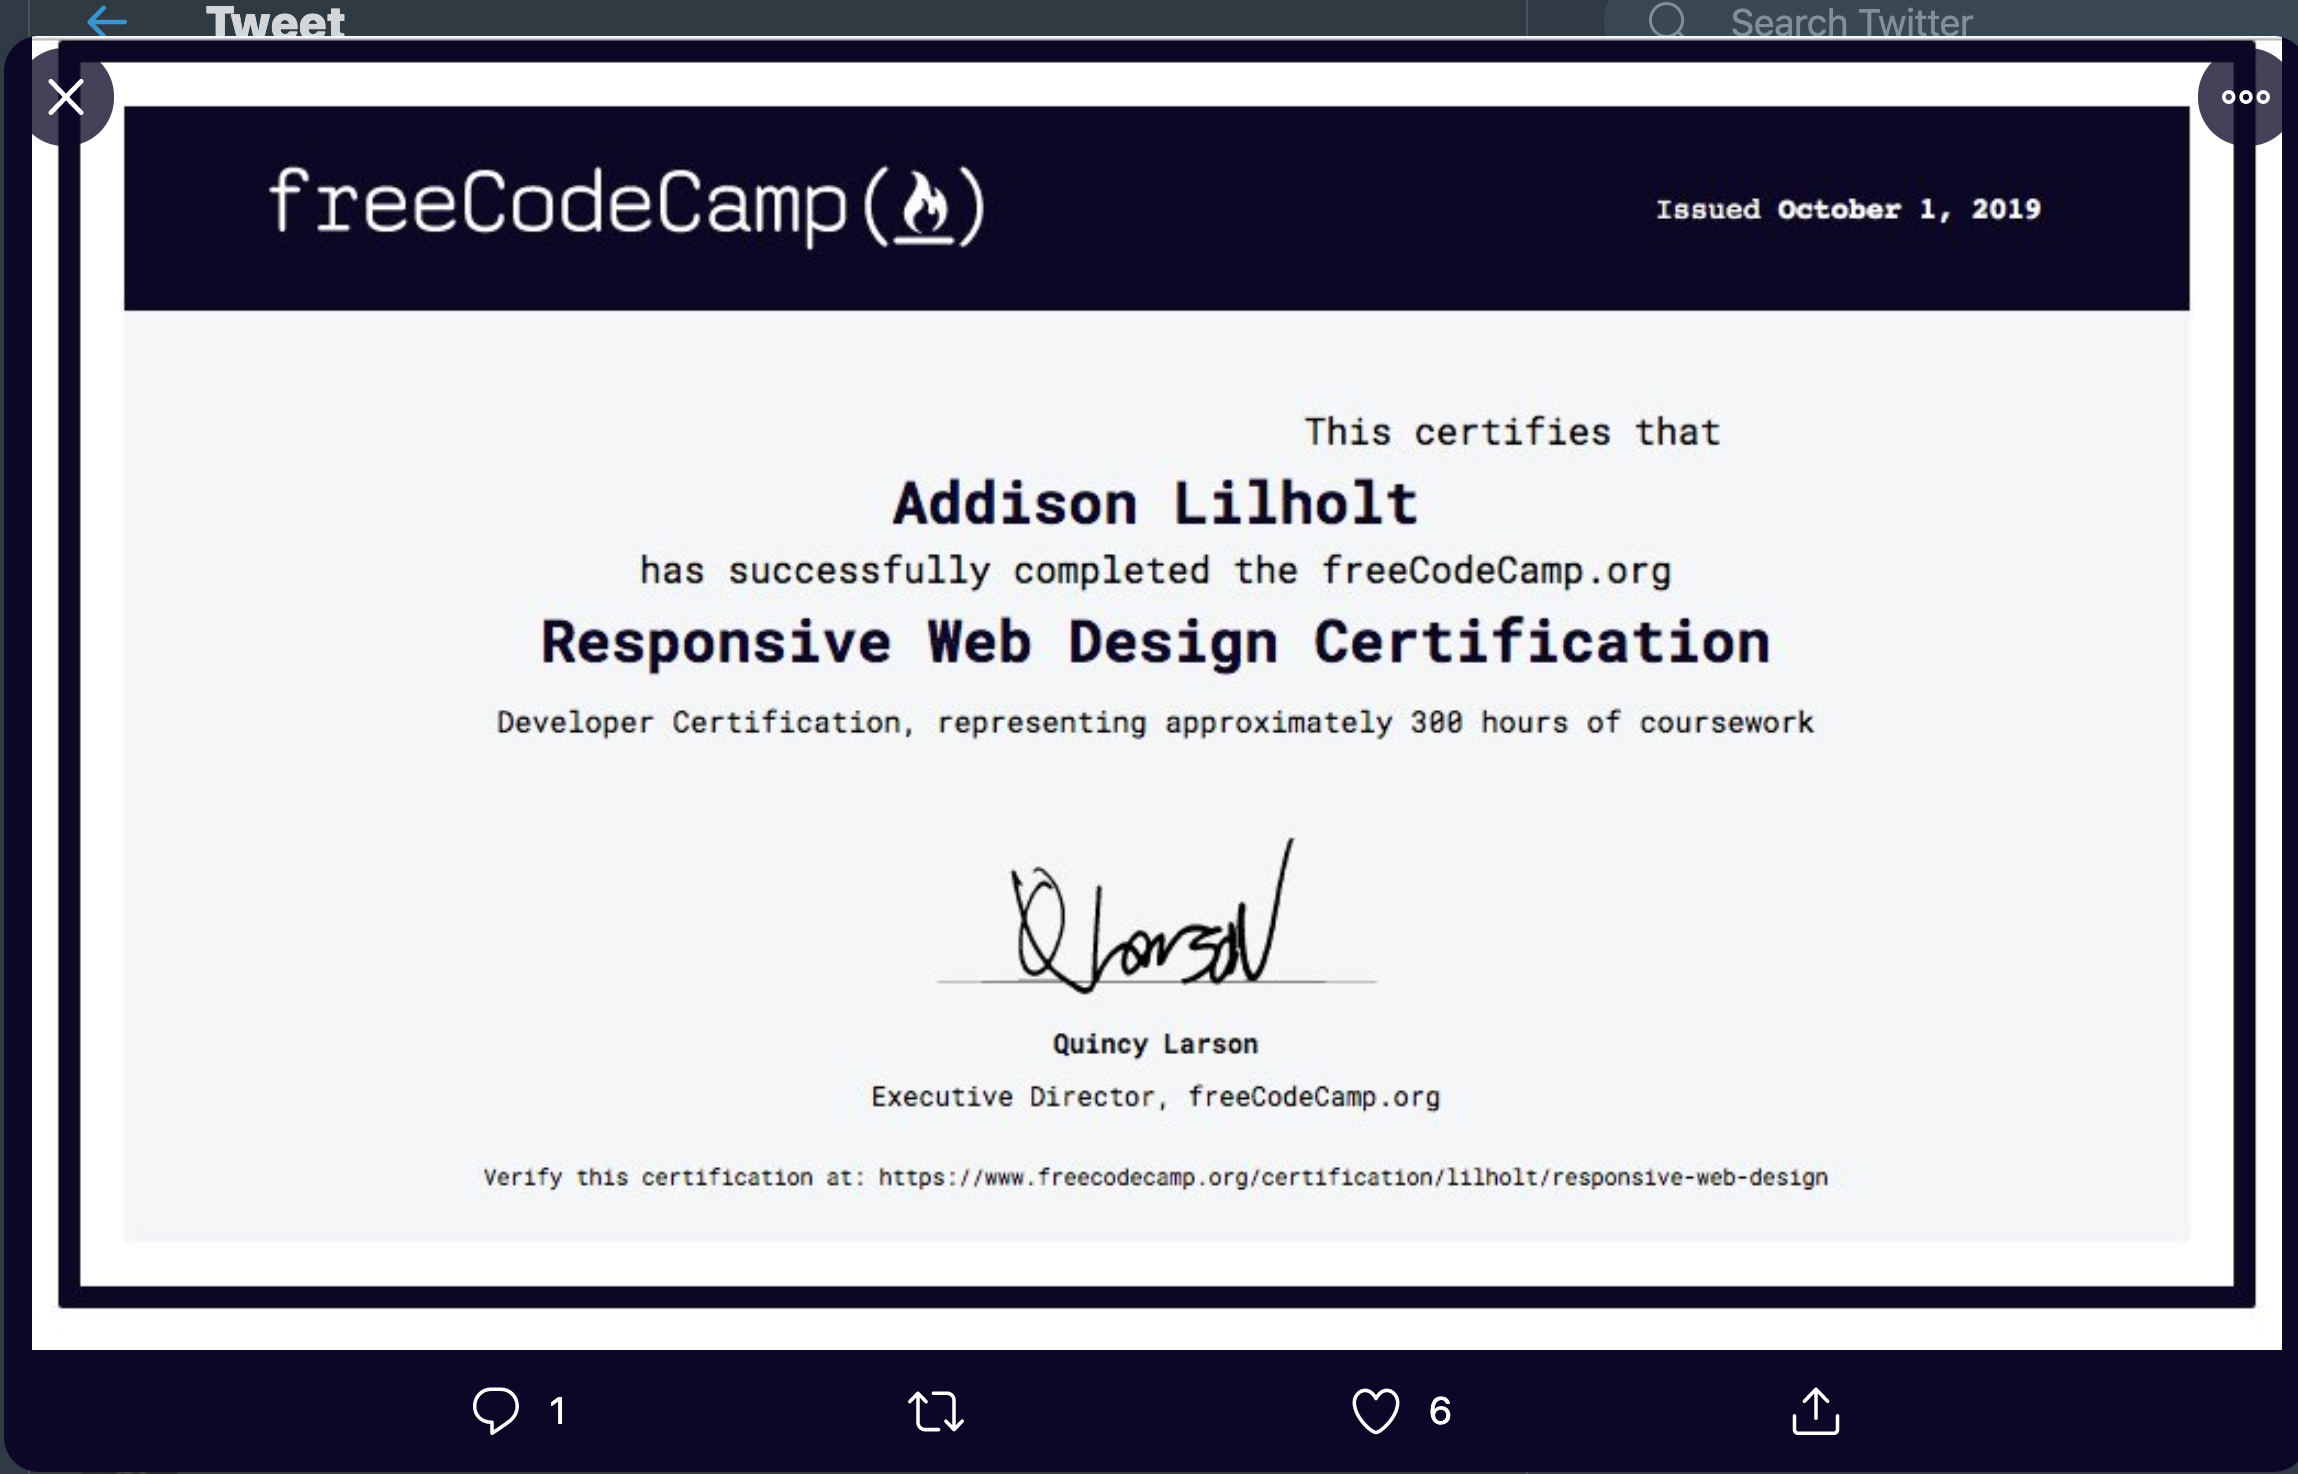 Certifications Look Buggy With New Fonts Issue 37378 Freecodecamp Freecodecamp Github